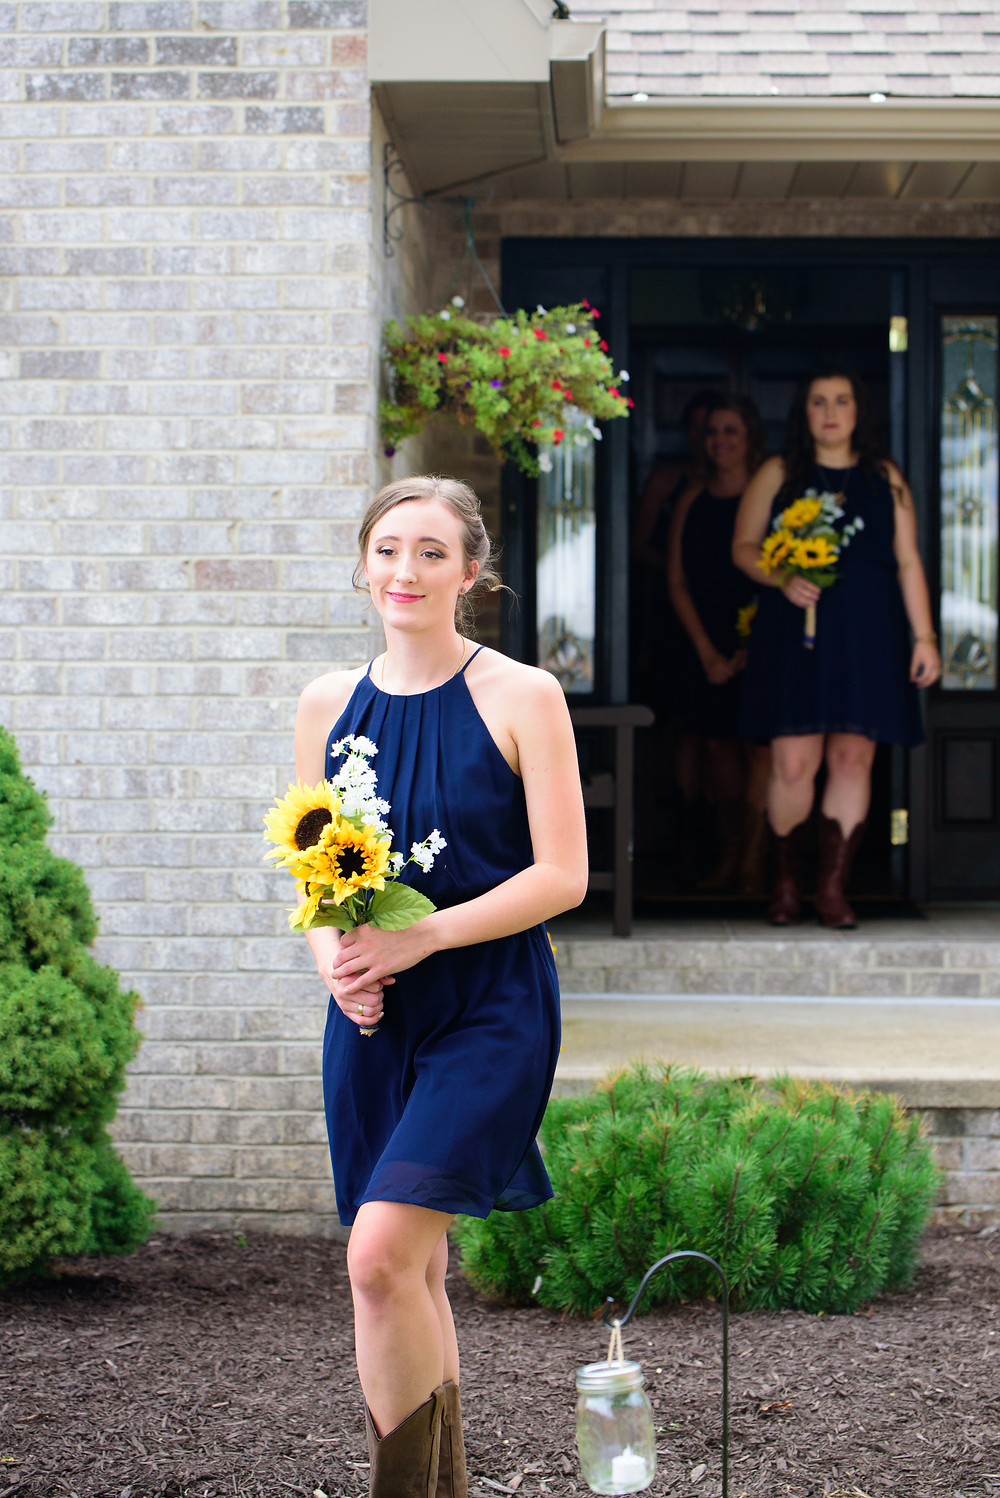 A photography of a bridesmaid walking down the aisle in a navy blue wedding dress and holding sunflowers.